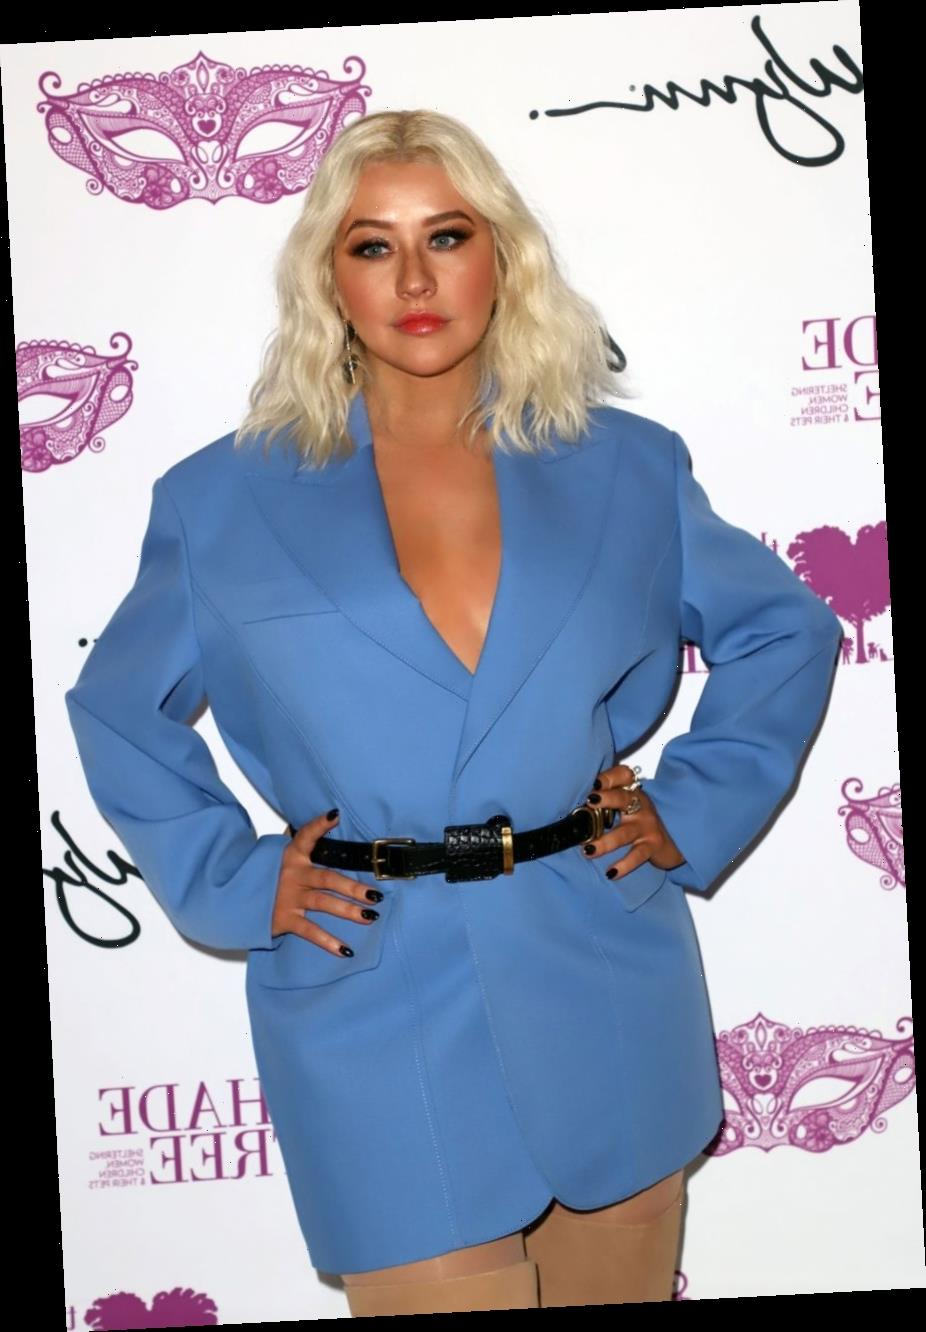 Christina Aguilera Gets Emotional Speaking About Domestic Violence: 'It's Just Disgusting'